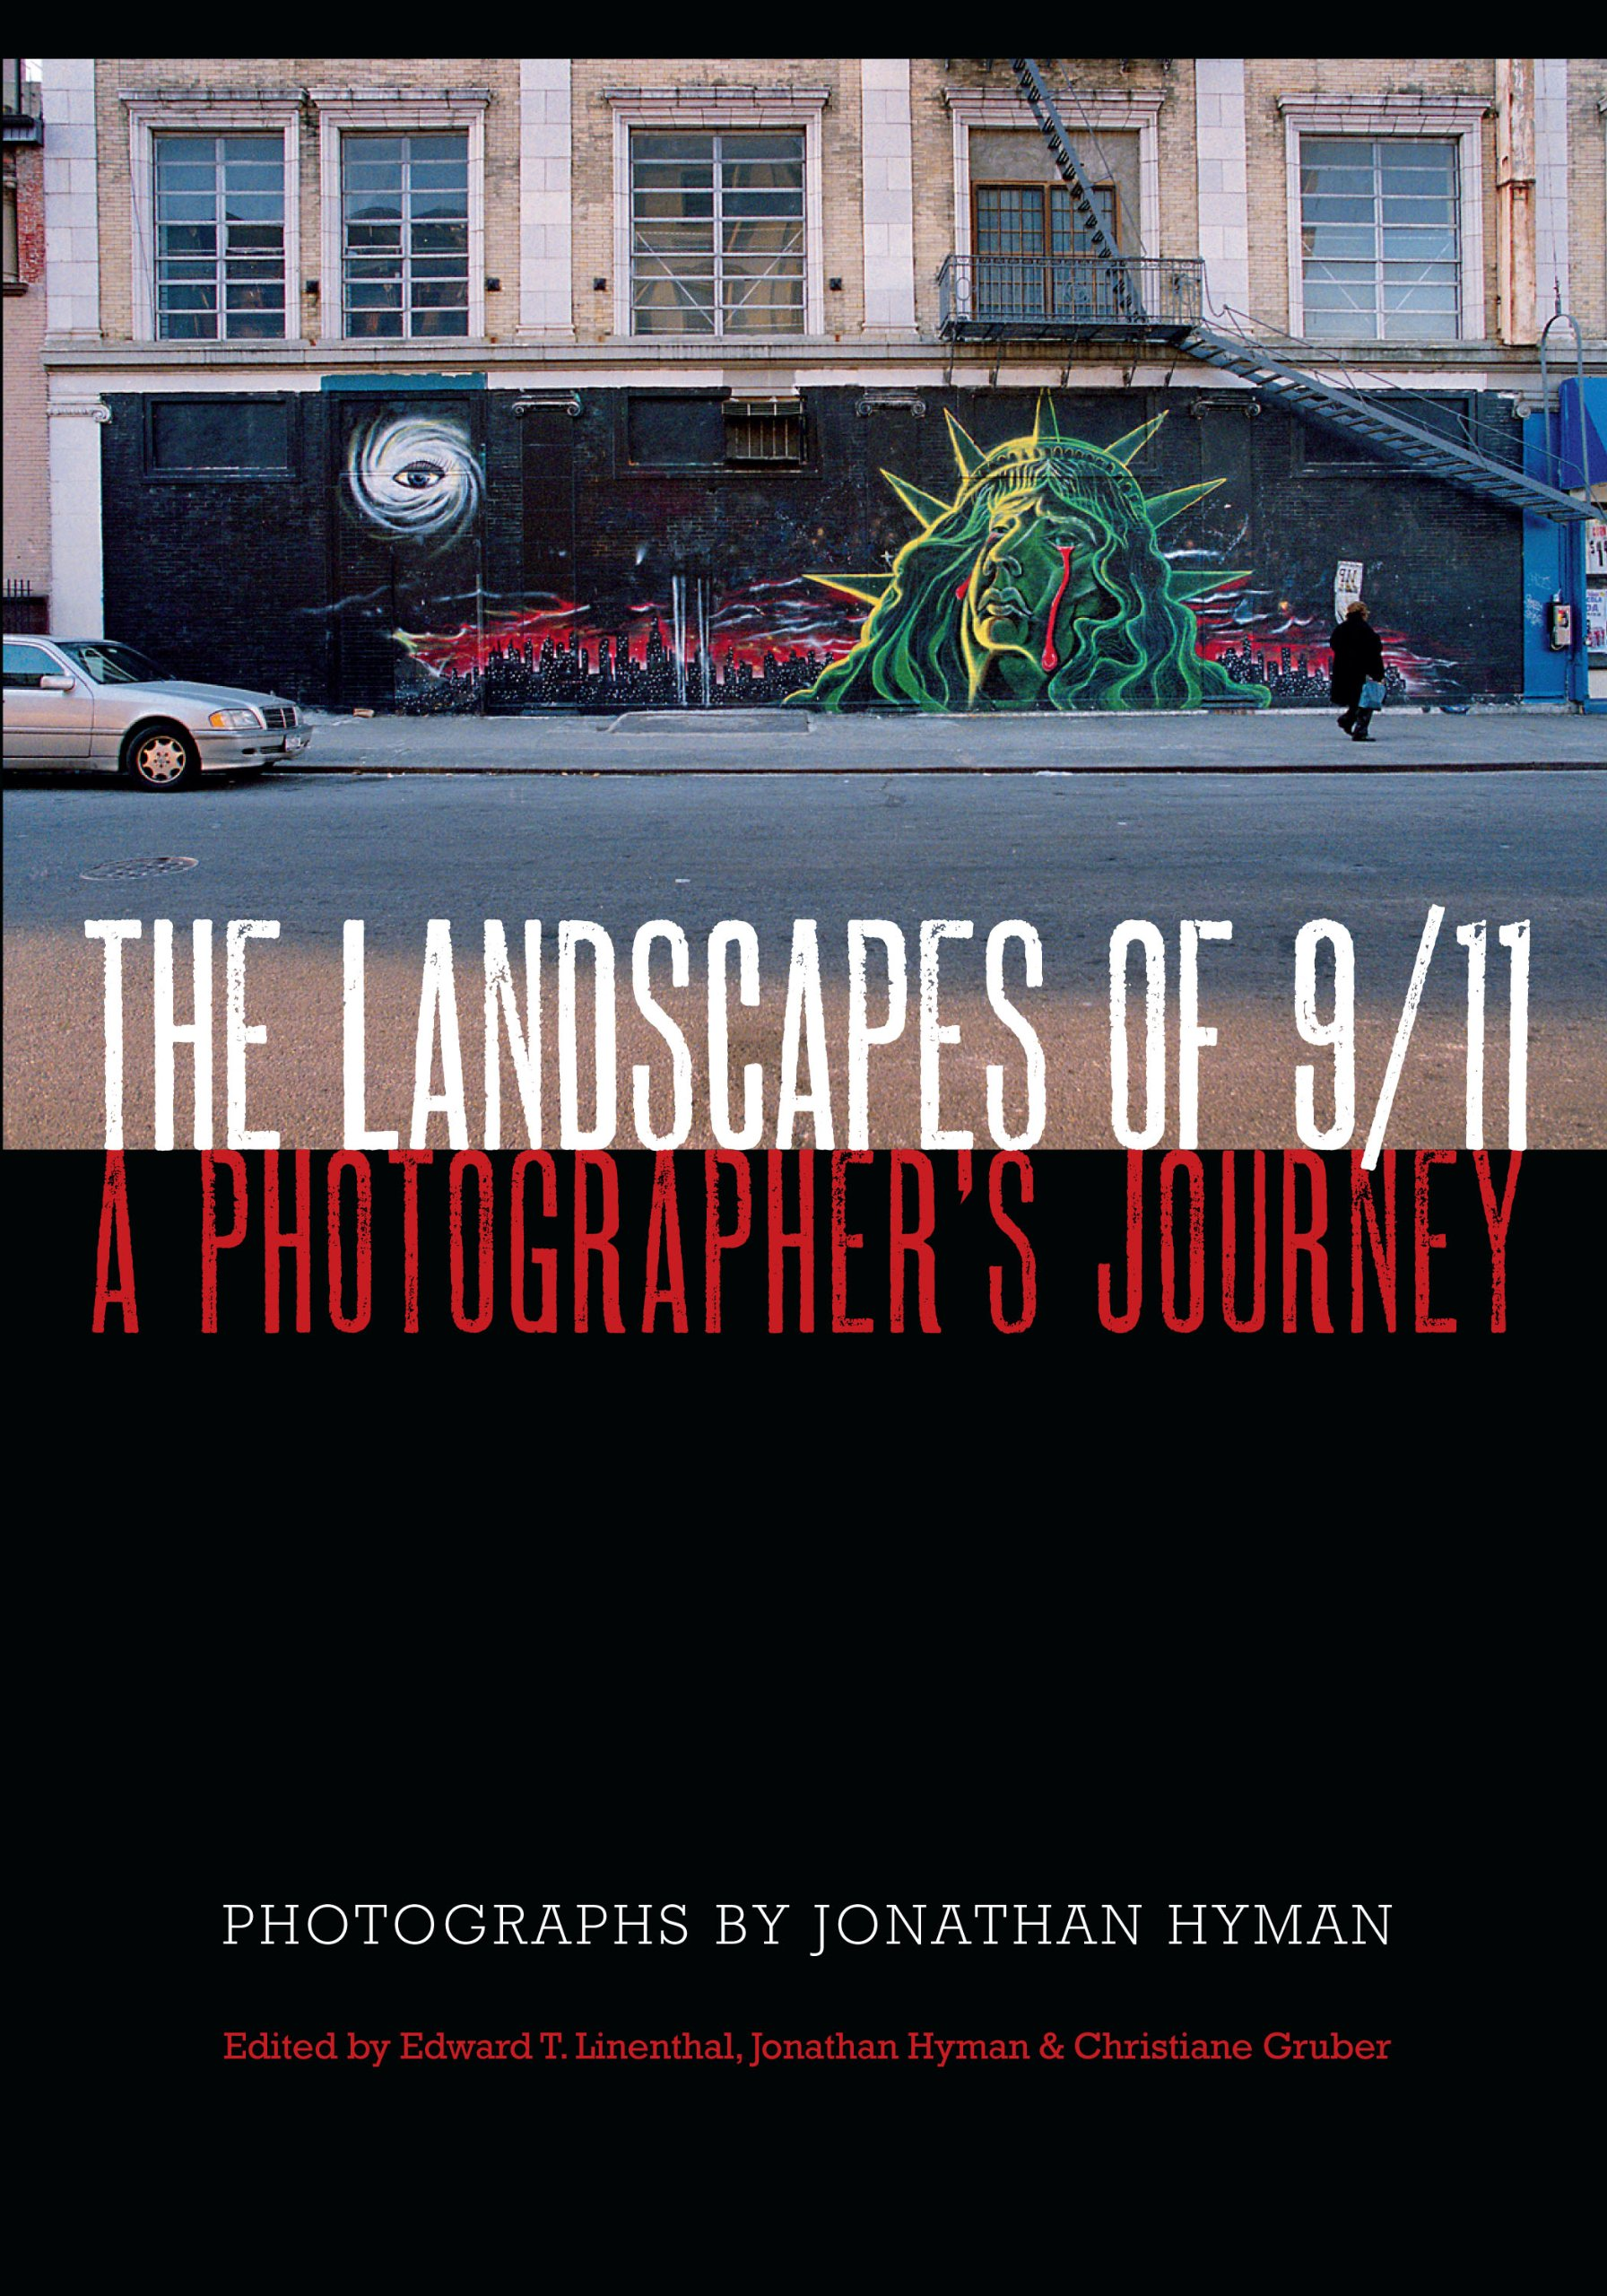 The Landscapes of 9/11: A Photographer's Journey